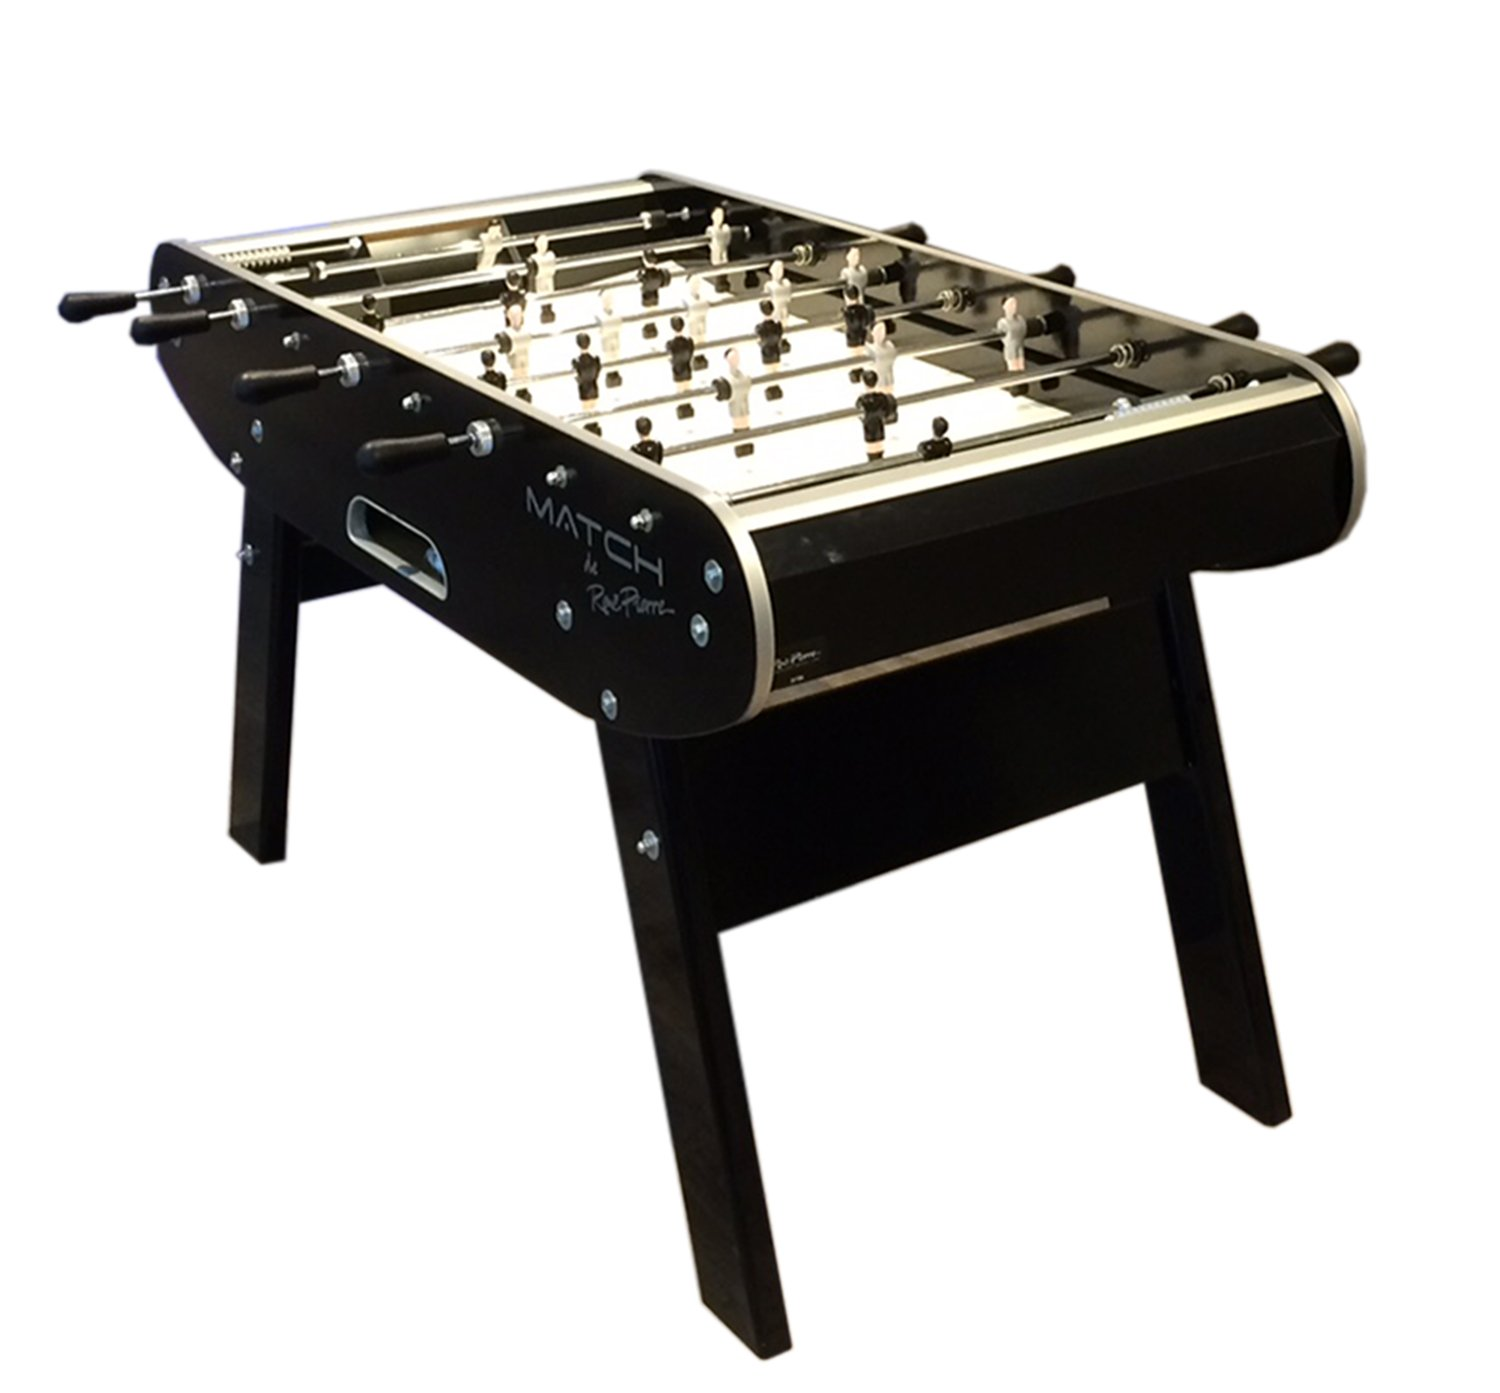 381fe2f2073a62 Rene Pierre Match Football Table. Black match football table. Black Match